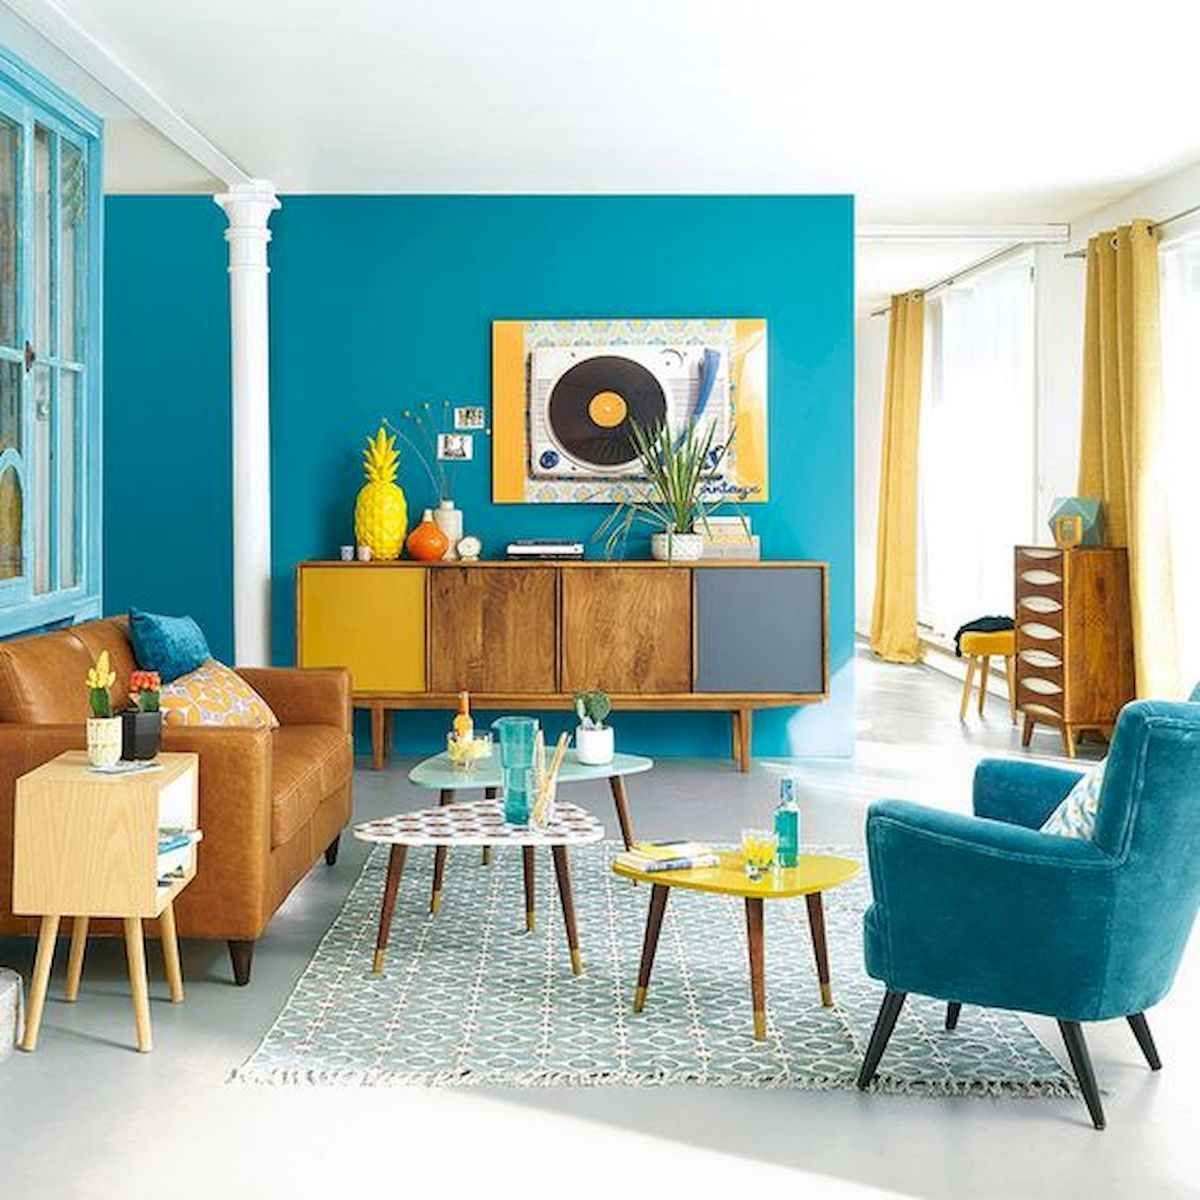 80+ Stunning Colorful Living Room Decor Ideas And Remodel for Summer Project (67)